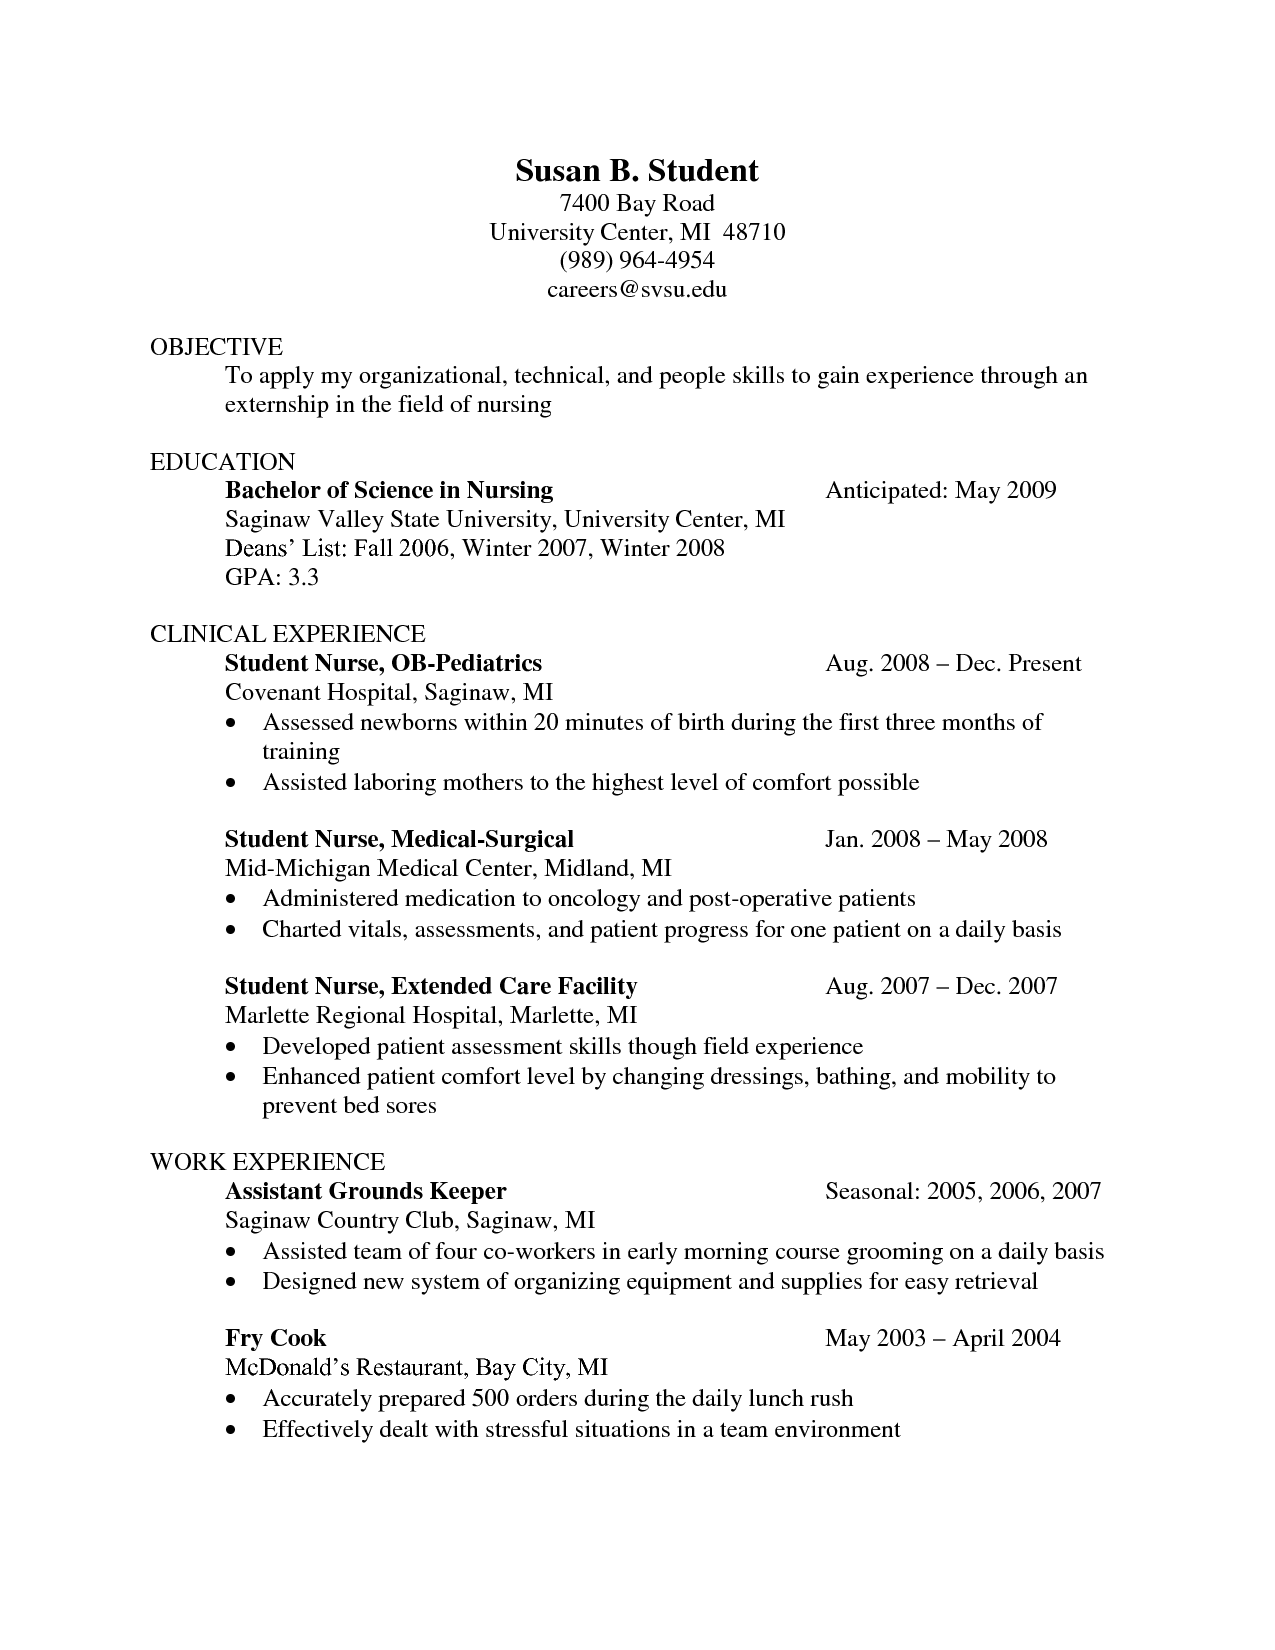 oncology nurse resume templates resumecareer info oncology nurse resume templates resumecareer info oncology